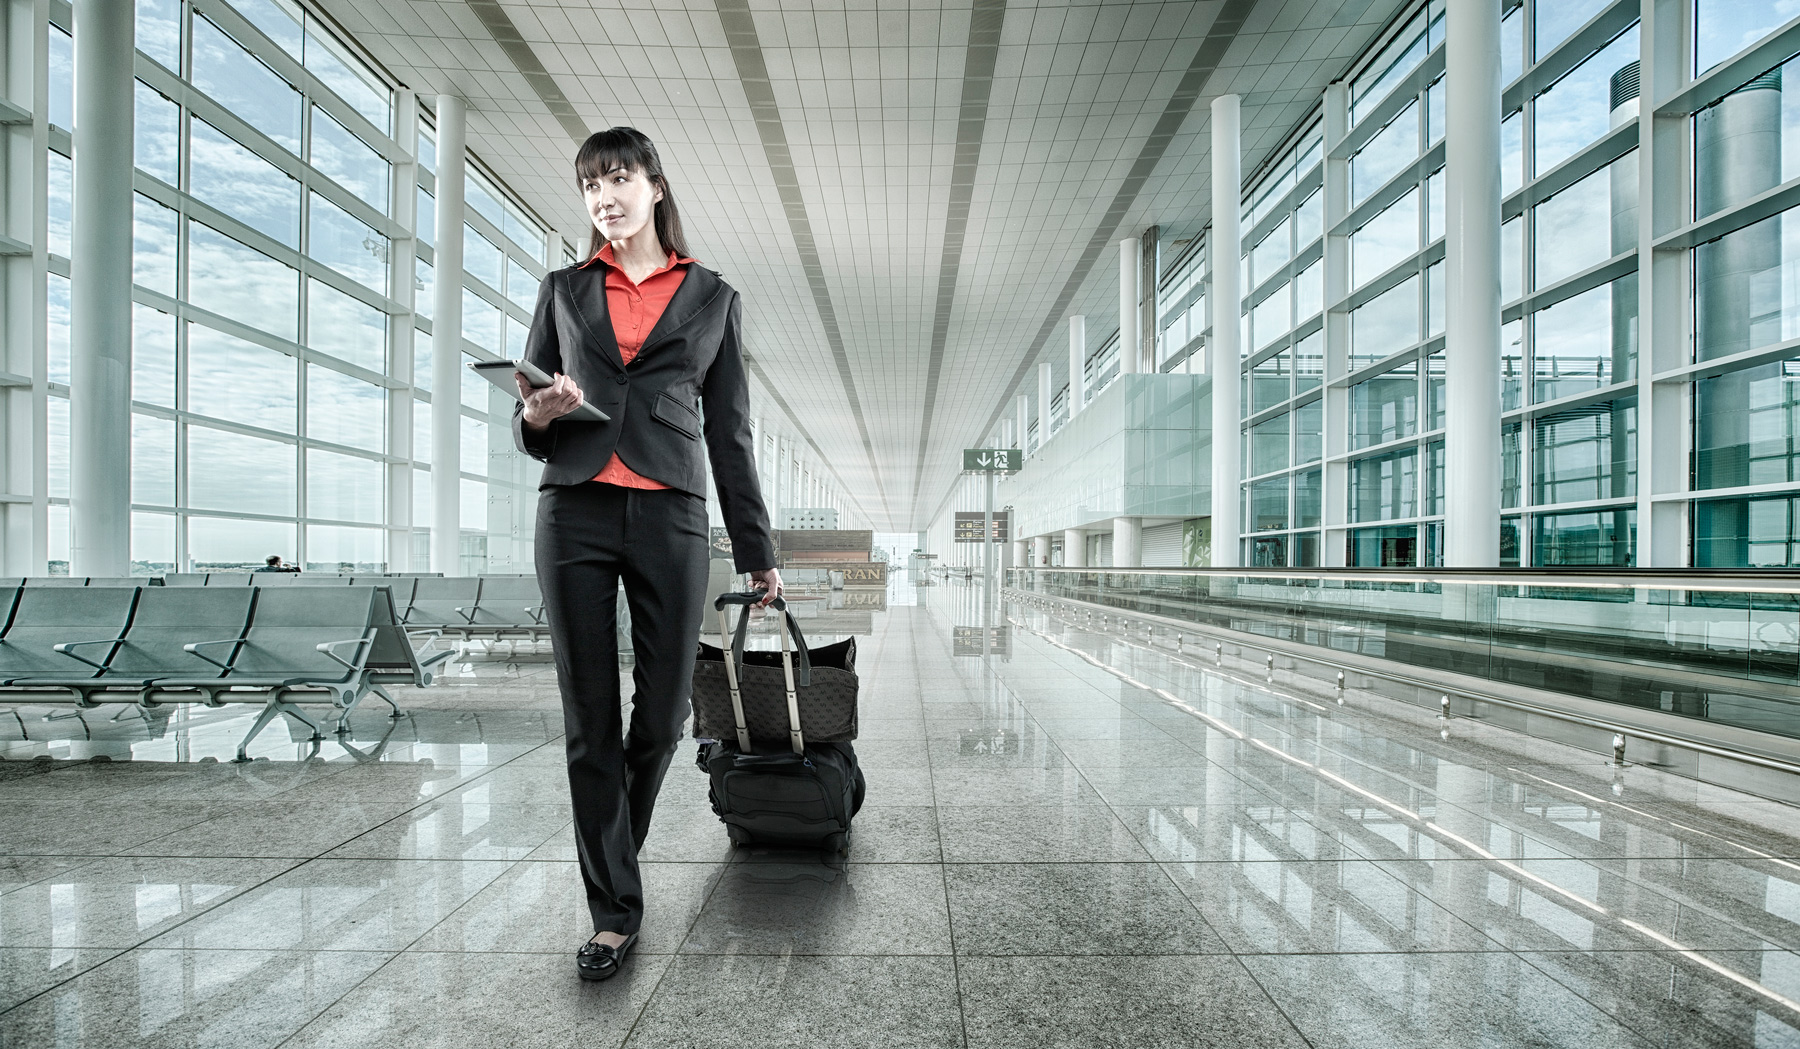 Business woman in airport | Dovis Bird Agency Photography